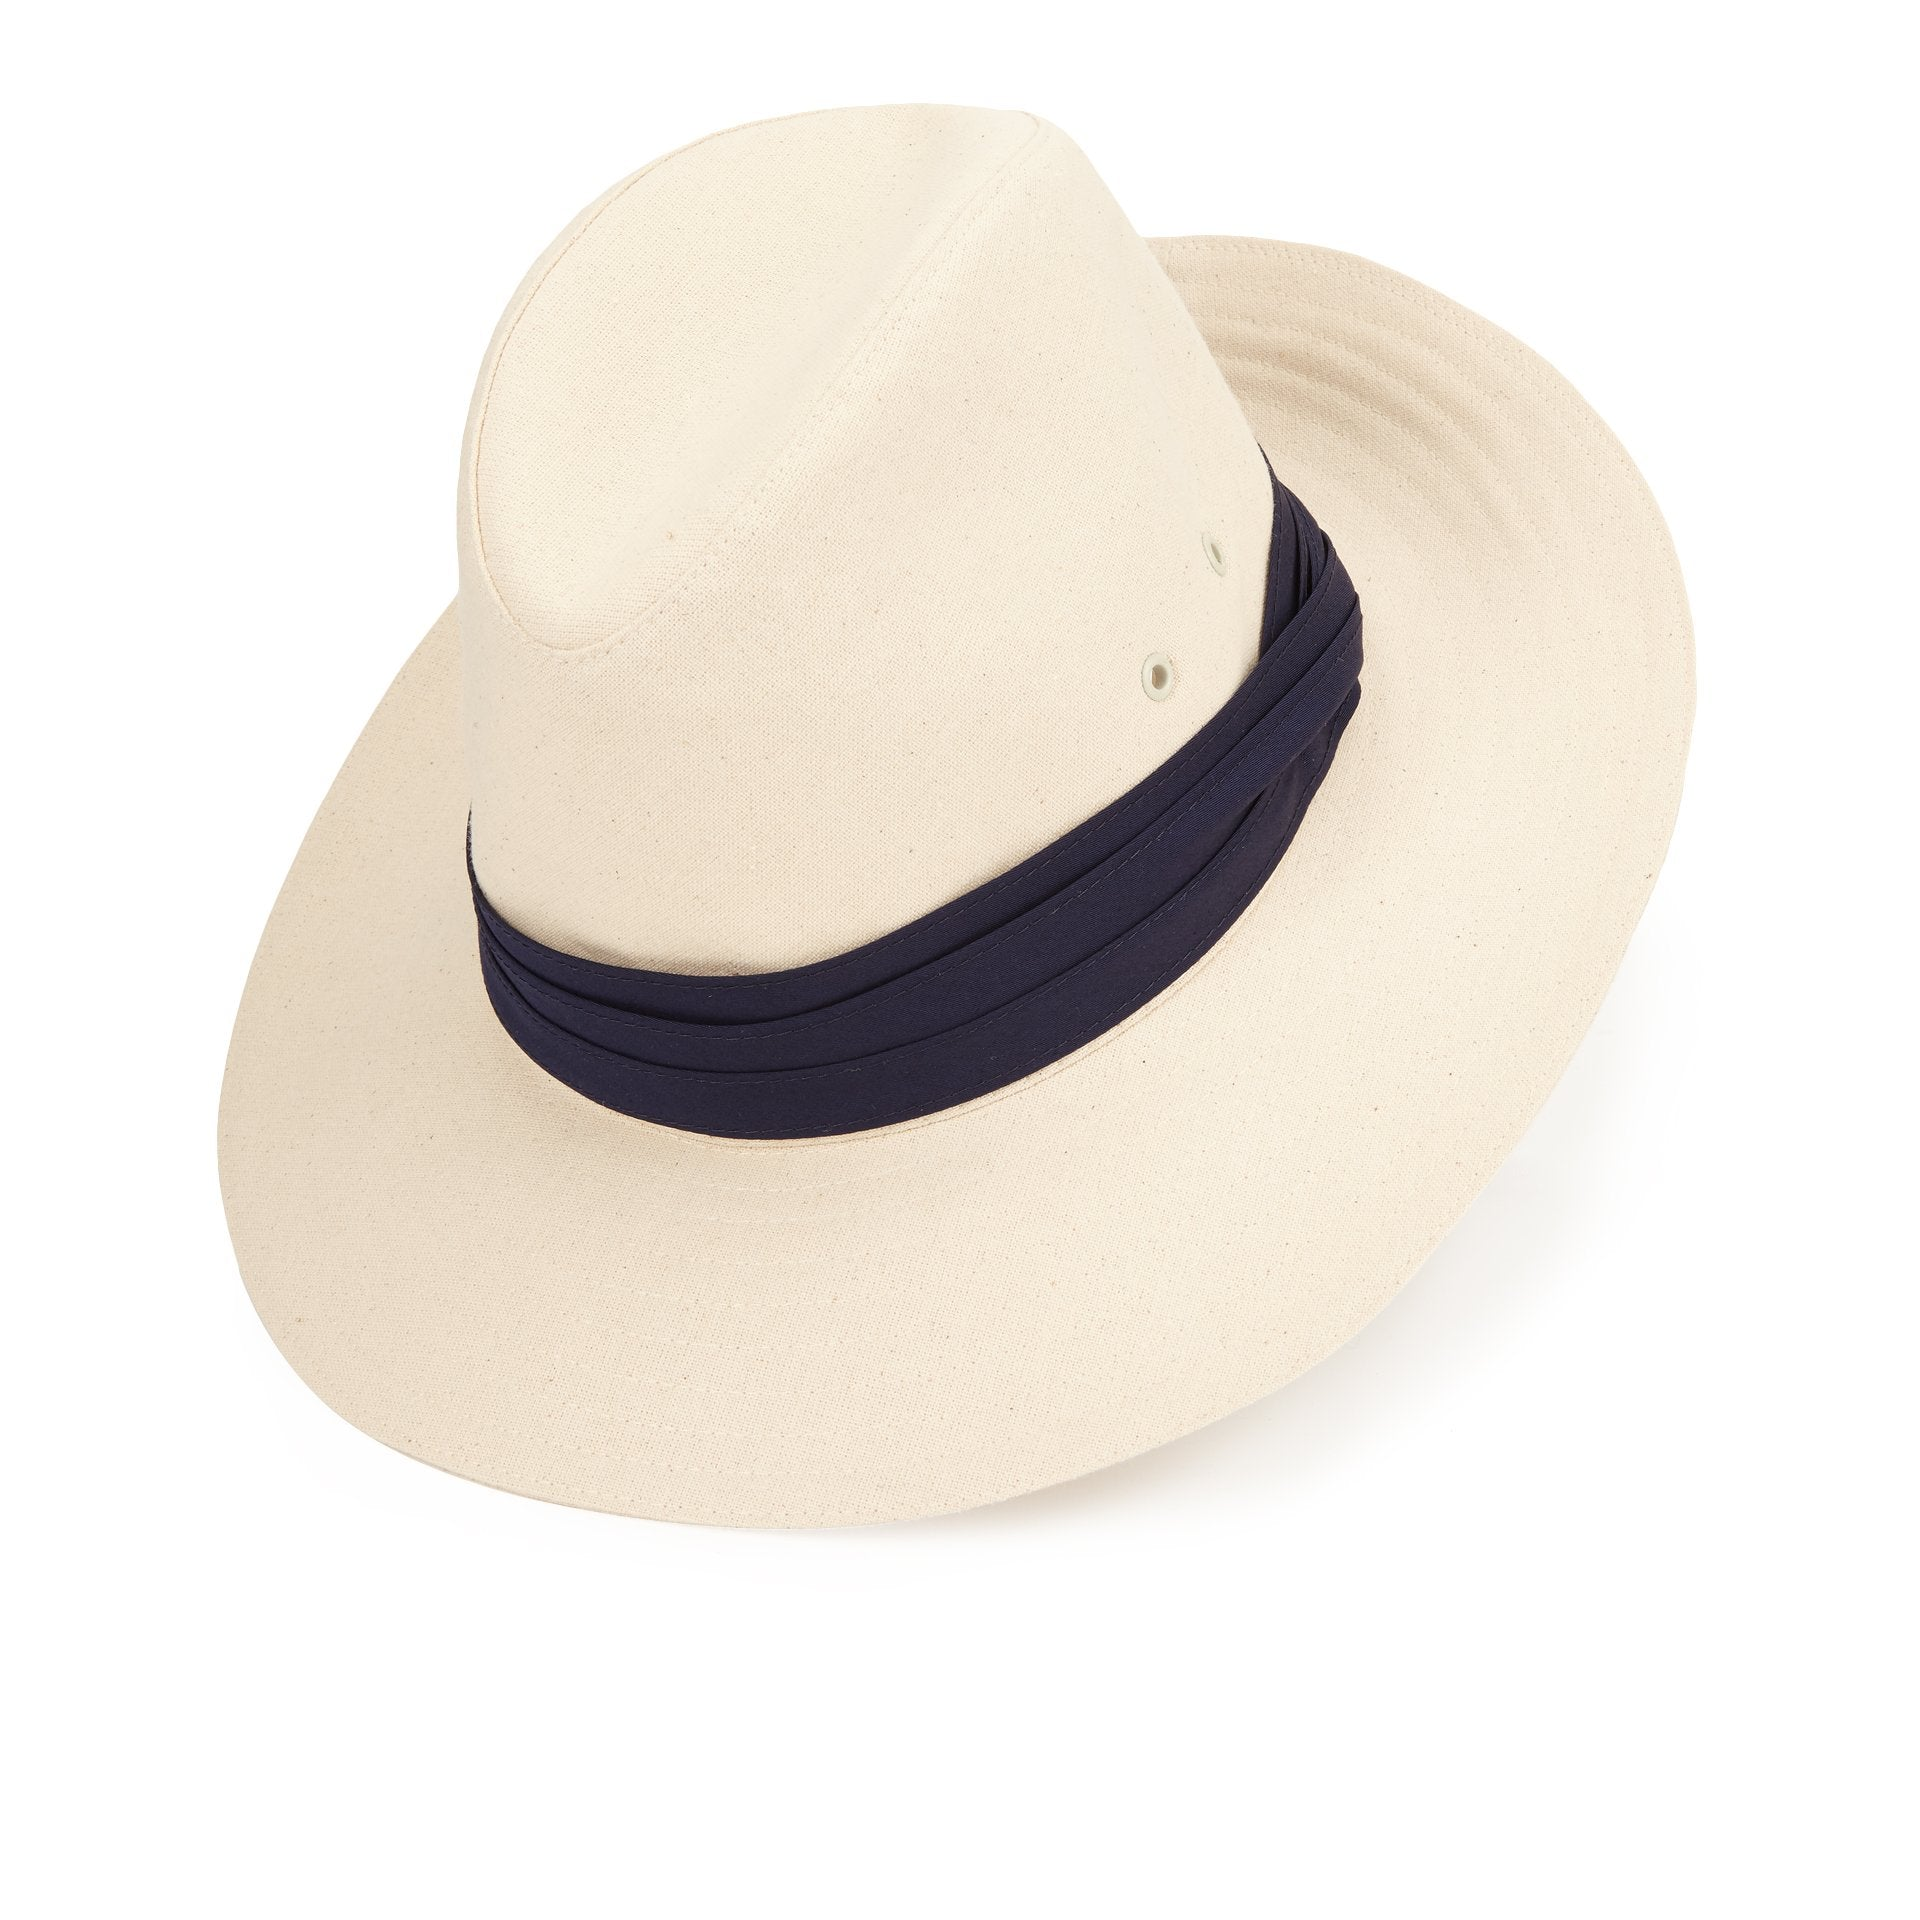 Namibia calico fedora - Fedoras & homburgs - Lock & Co. Hatters London UK